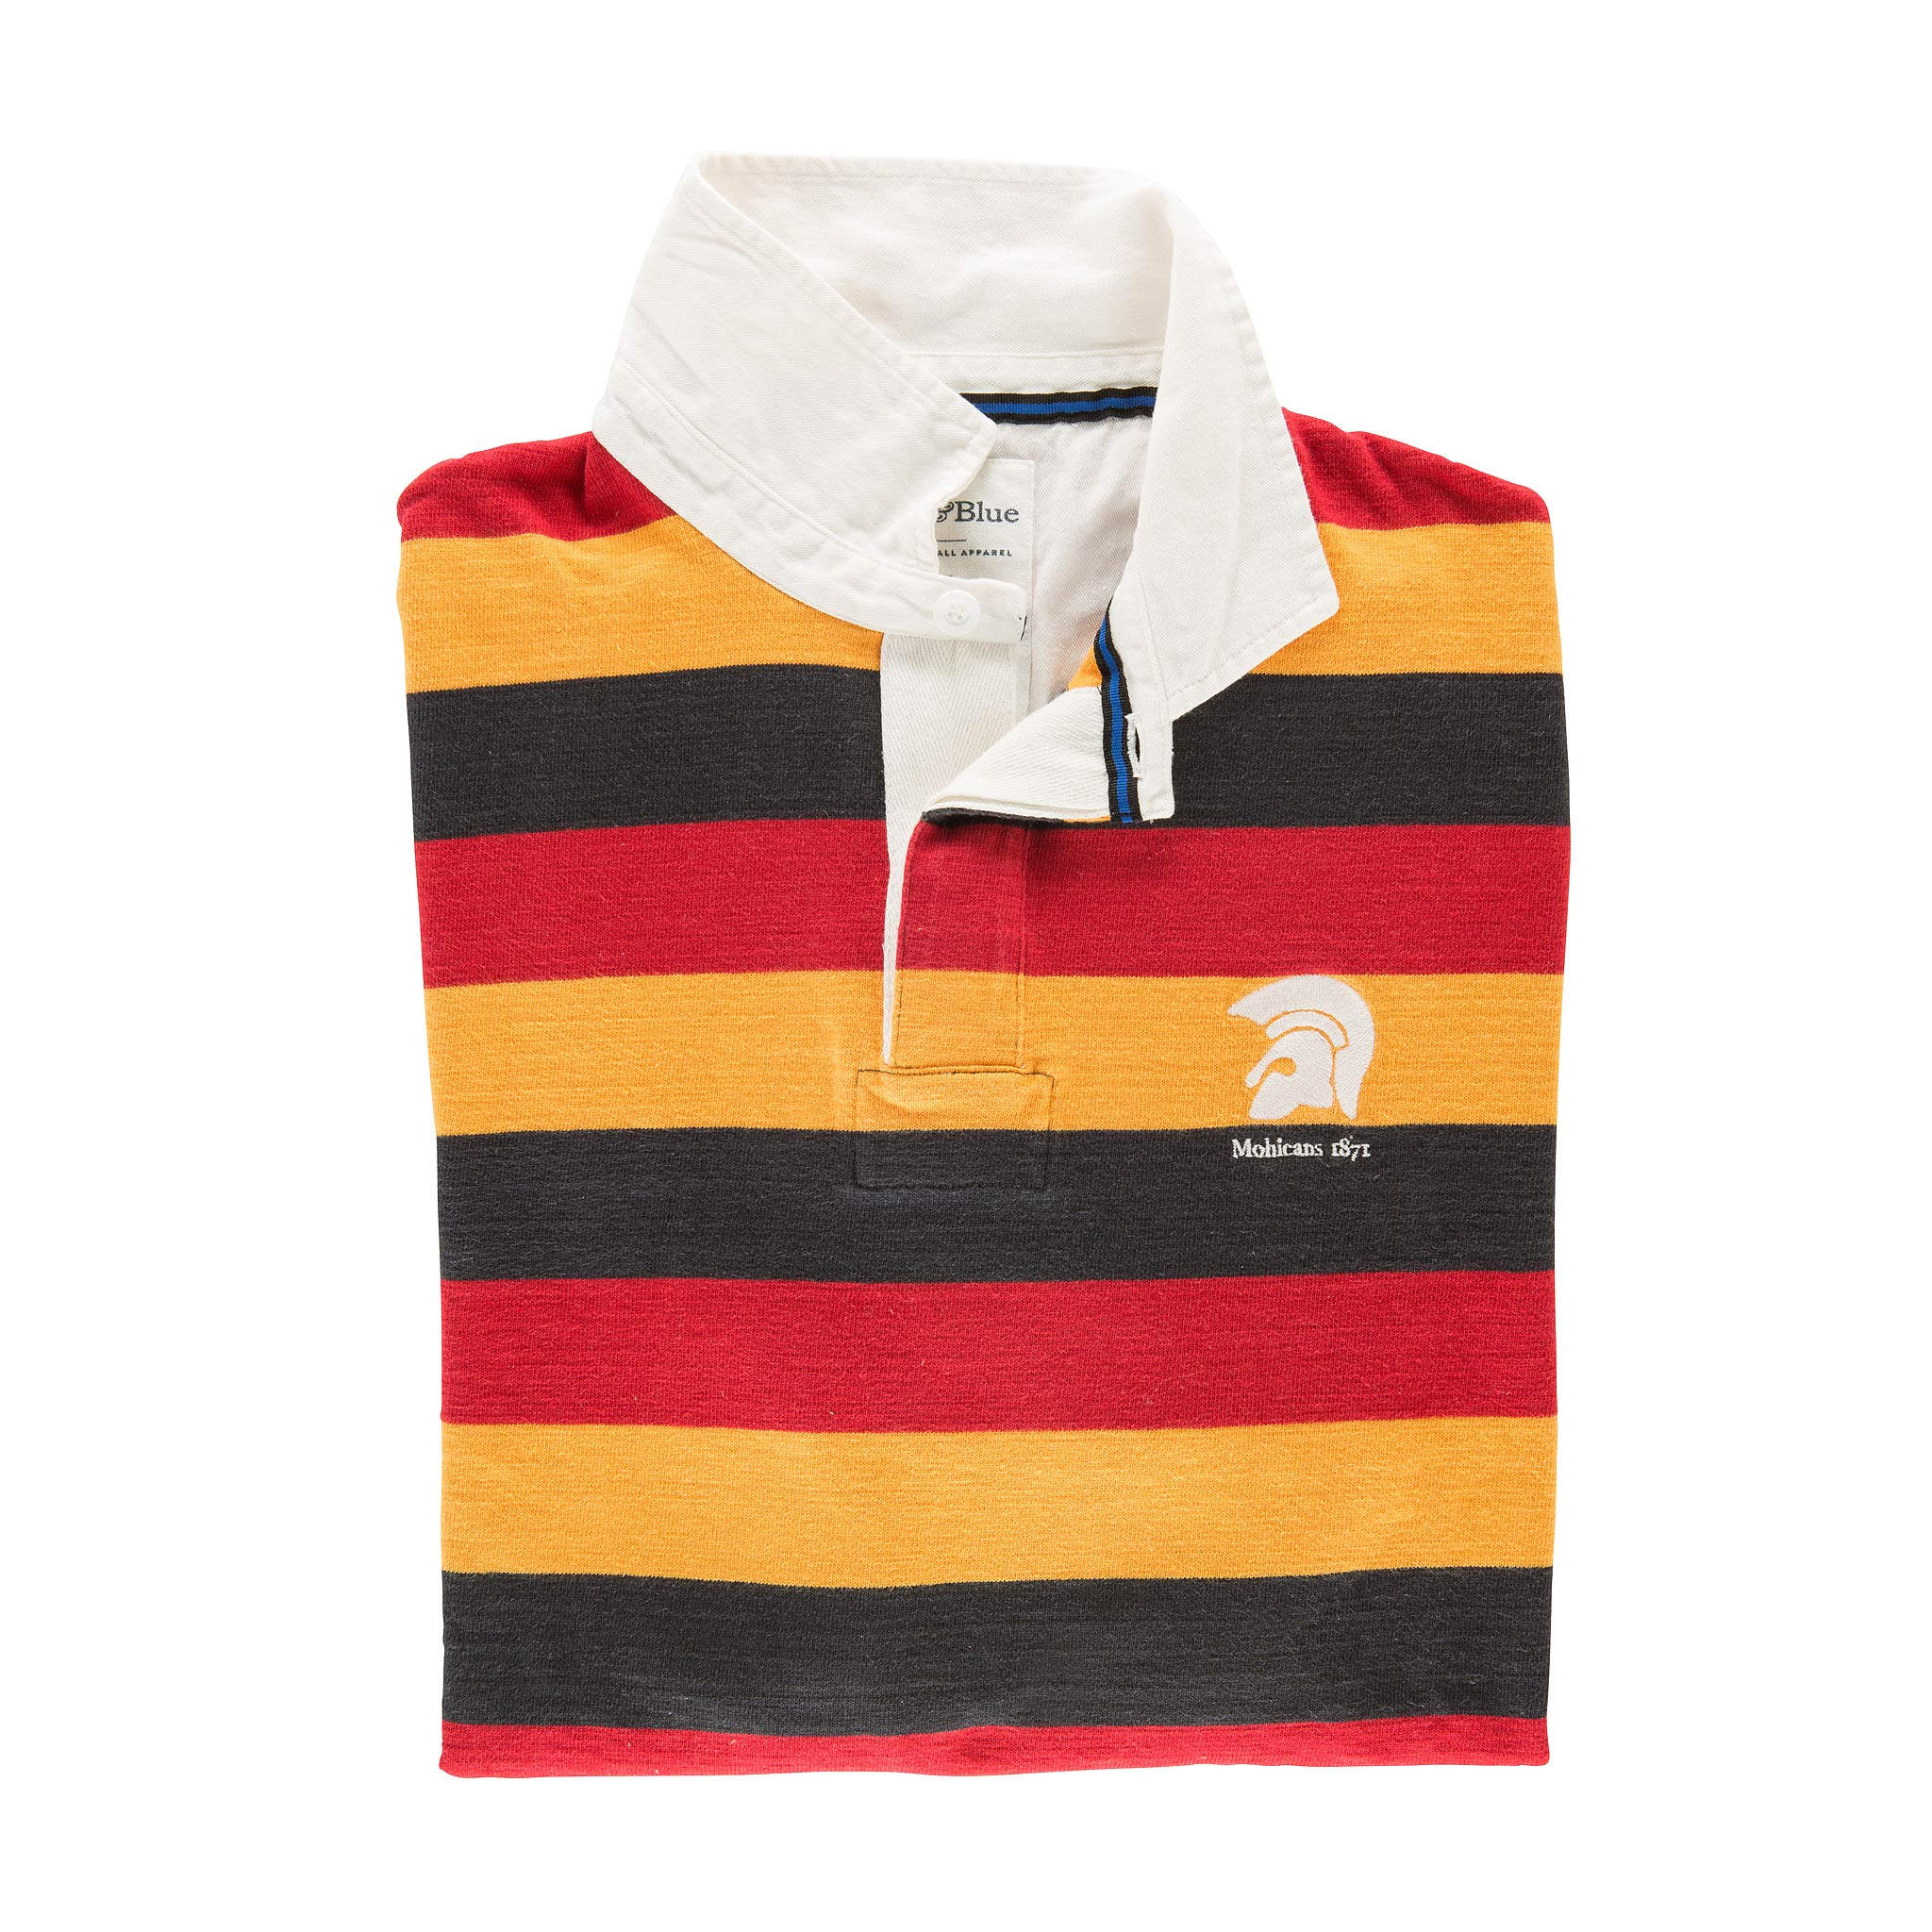 Mohicans 1871 Rugby Shirt - folded